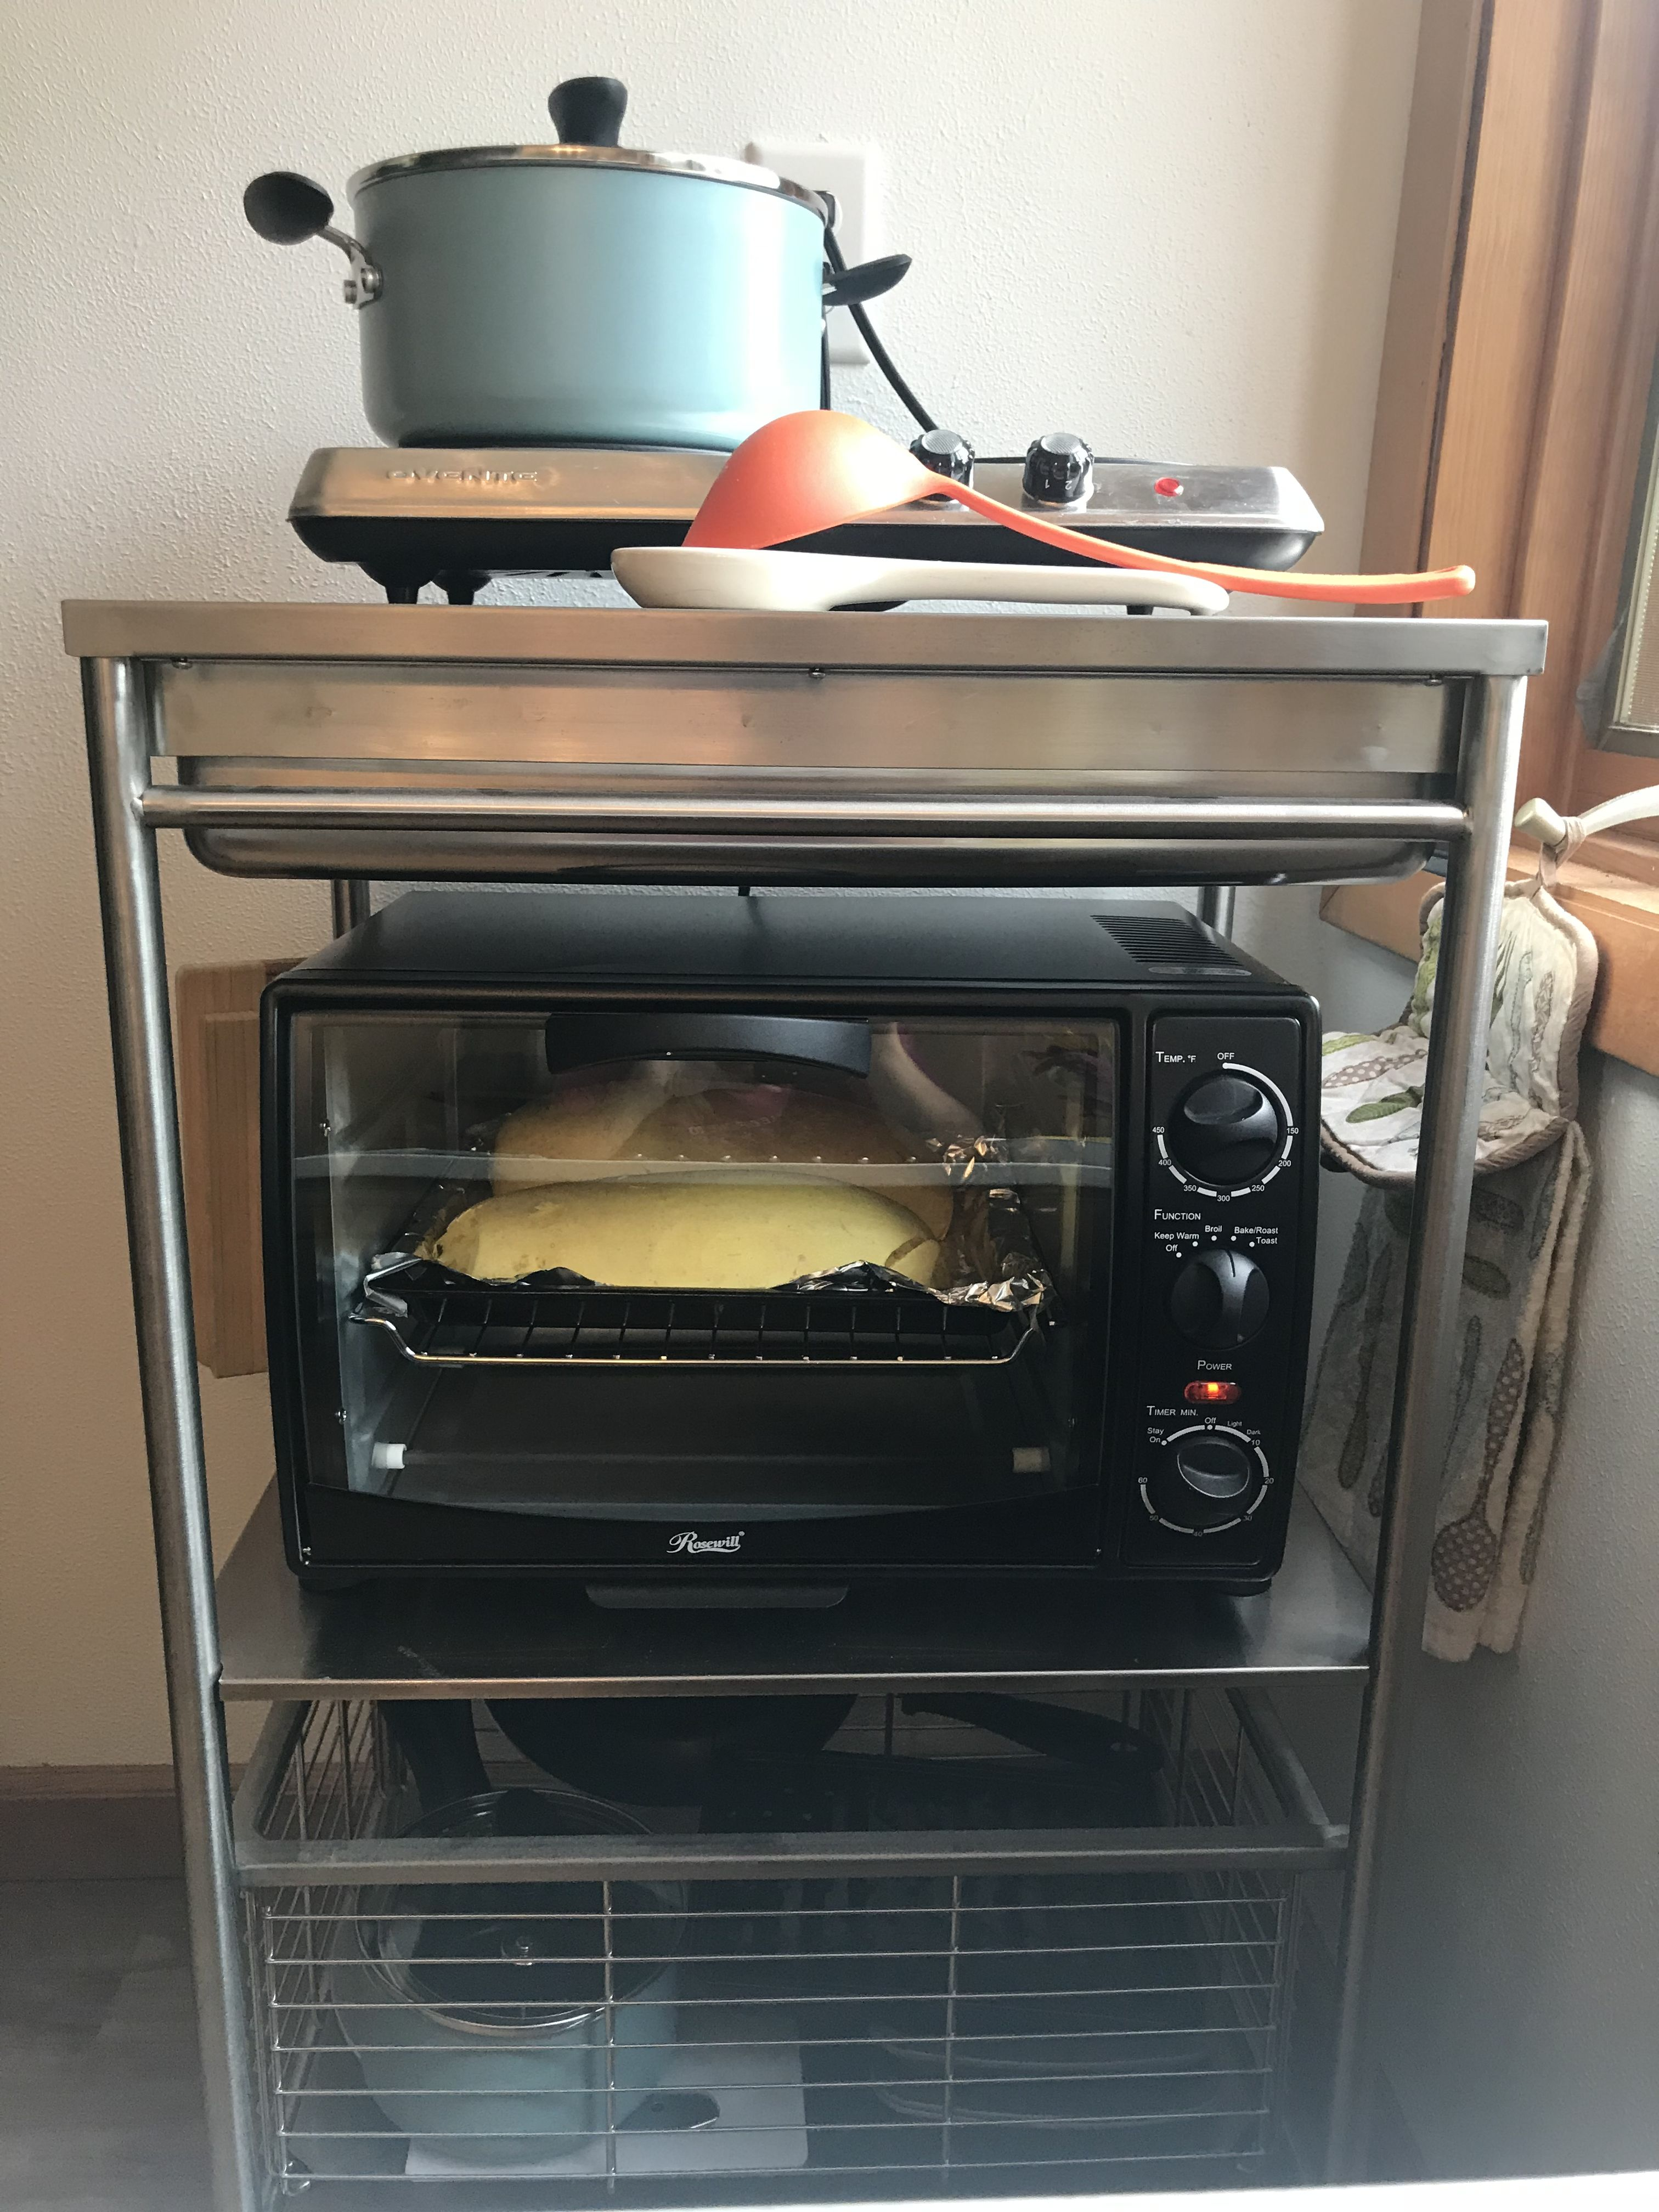 Kitchenette Countertop Oven And Hot Plate On Bar Cart Microwave Toaster Oven Toaster Oven Kitchenette